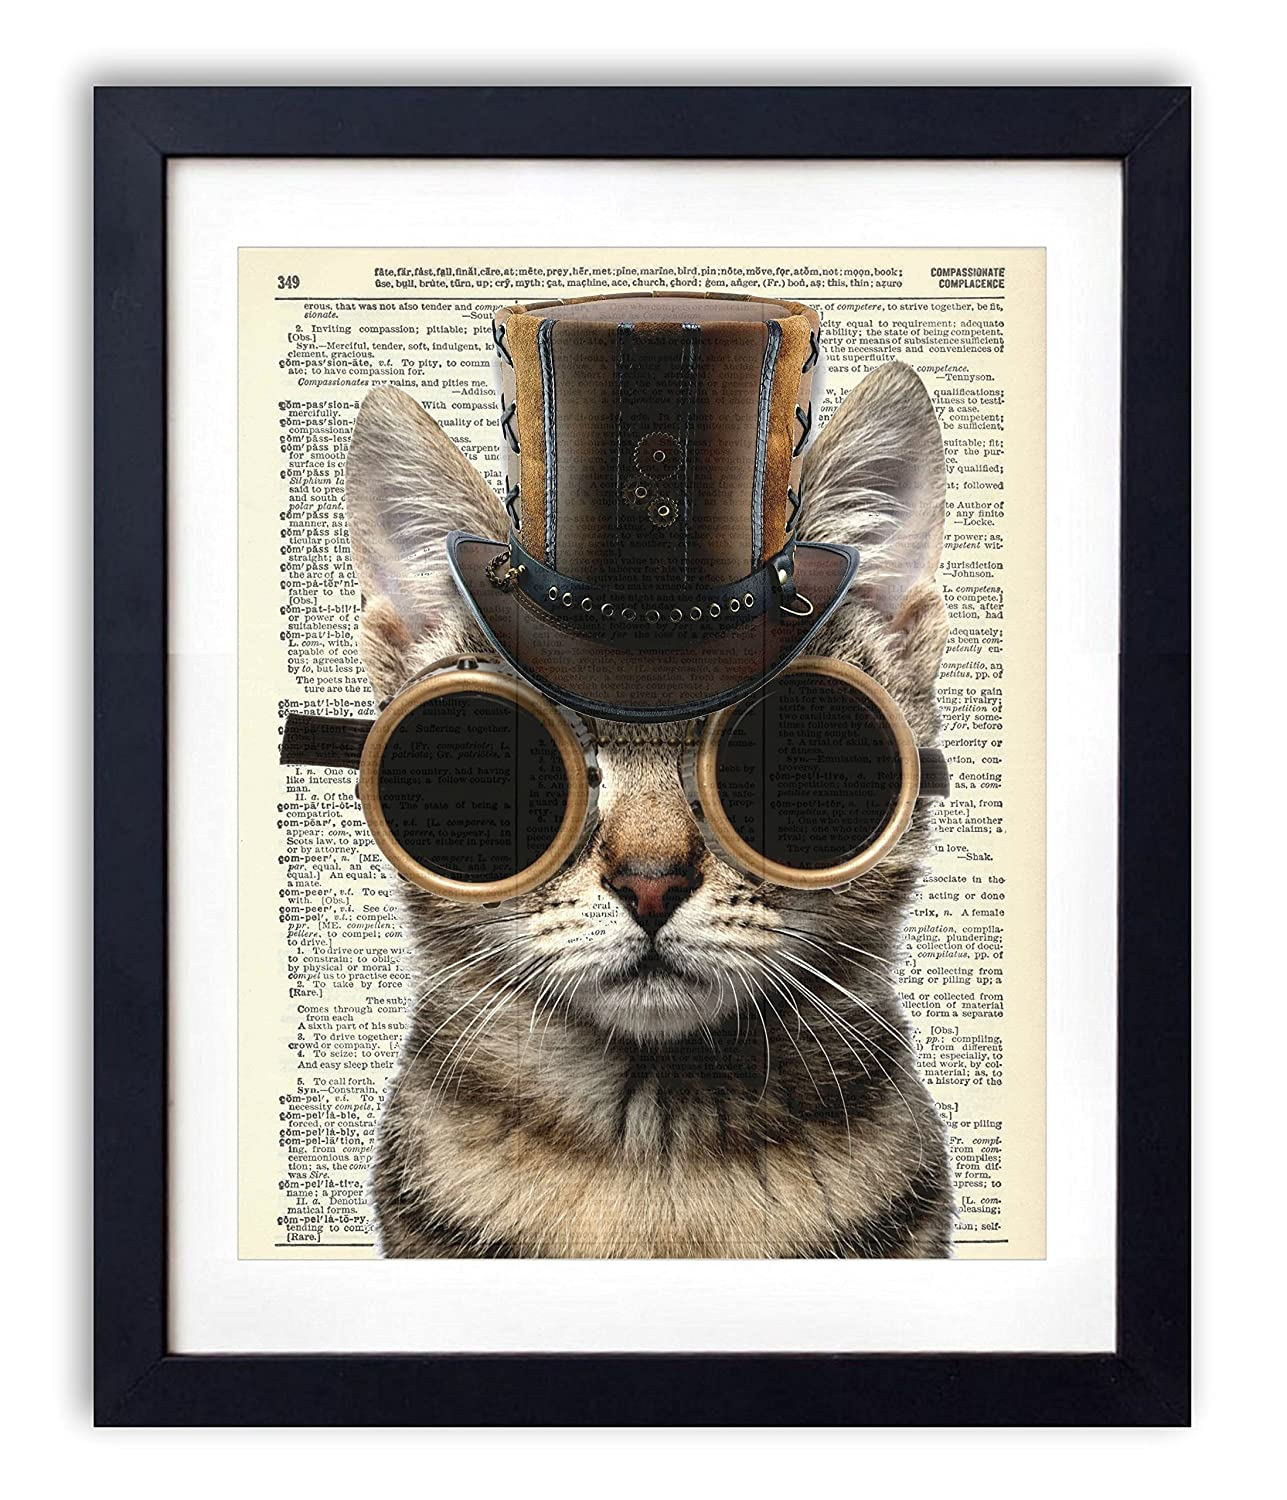 Steampunk Cat Upcycled Wall Art Vintage Dictionary Art Print 8x10 inches / 20.32 x 25.4 cm Unframed